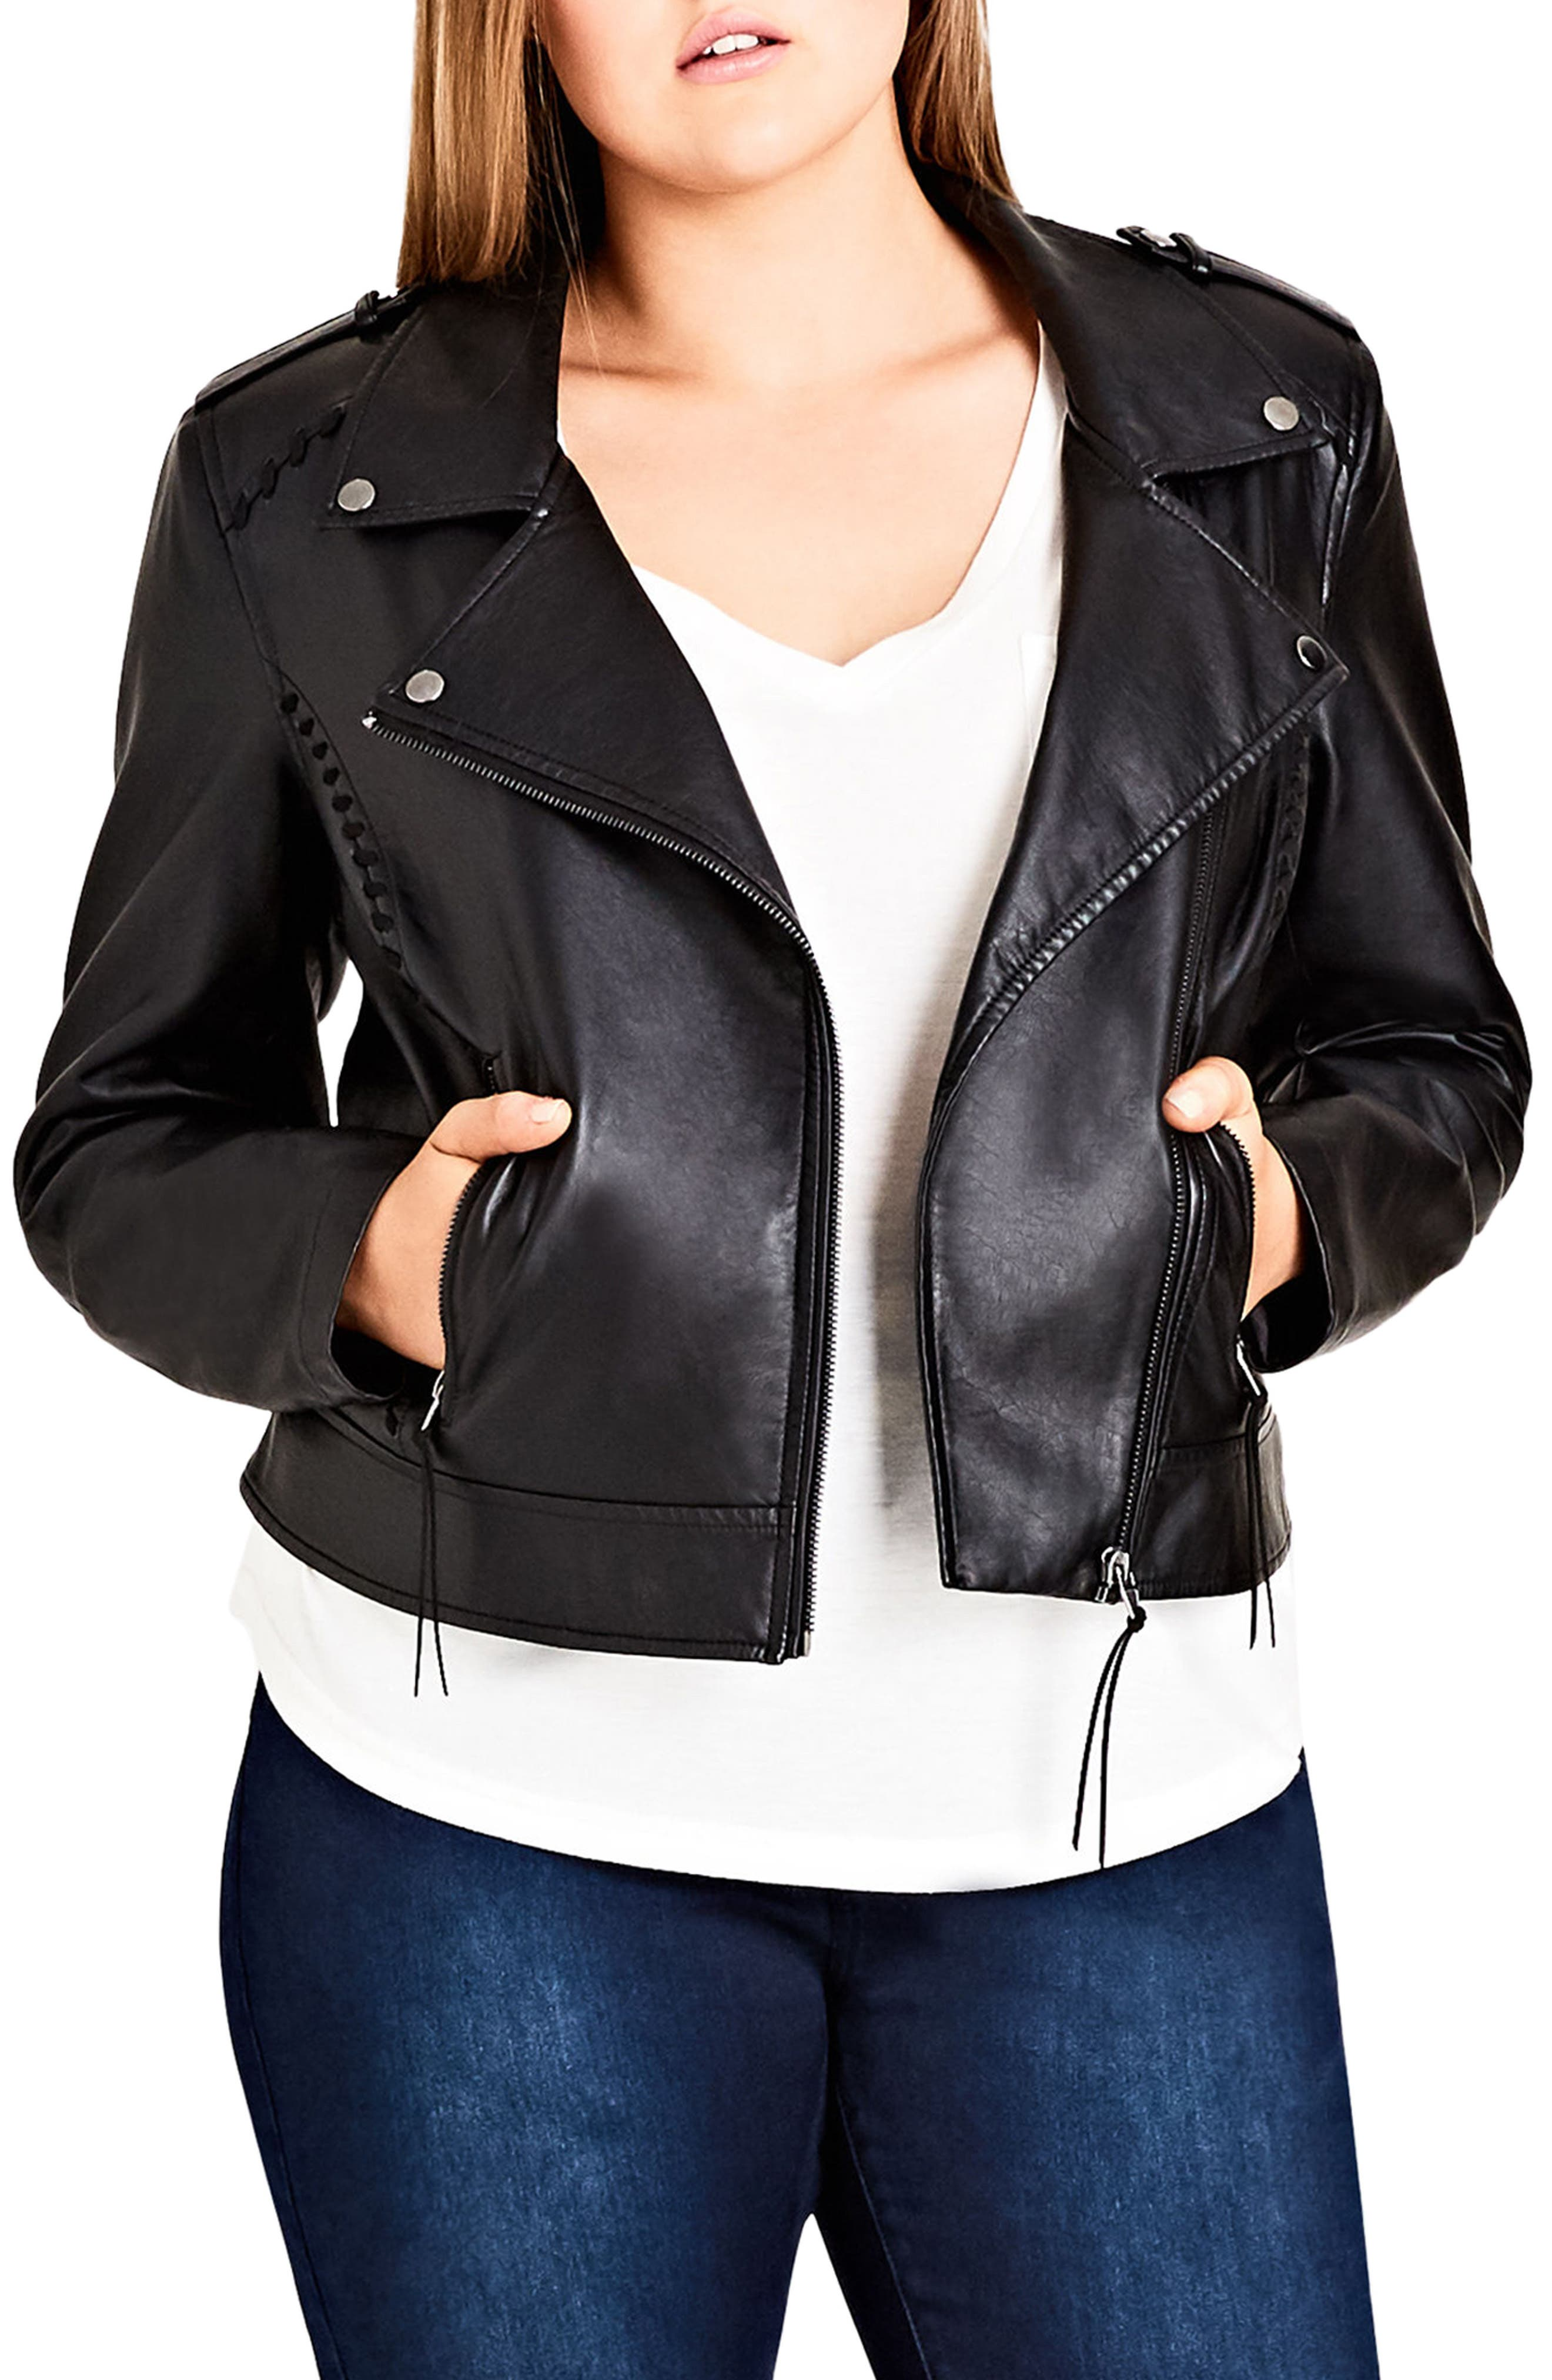 Main Image - City Chic Whipstitched Biker Jacket (Plus Size)